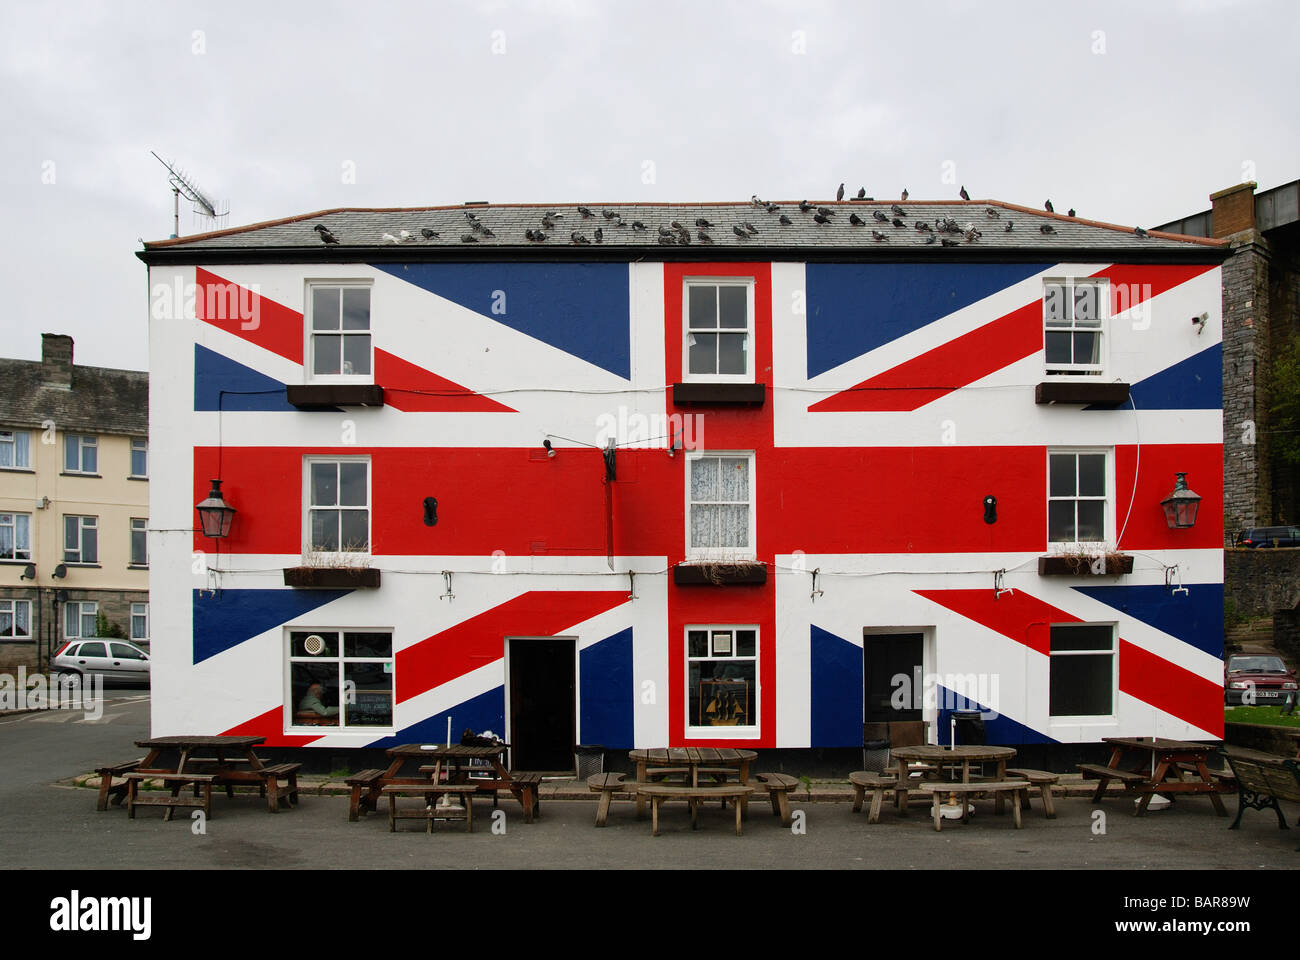 the union inn at saltash in cornwall,uk - Stock Image